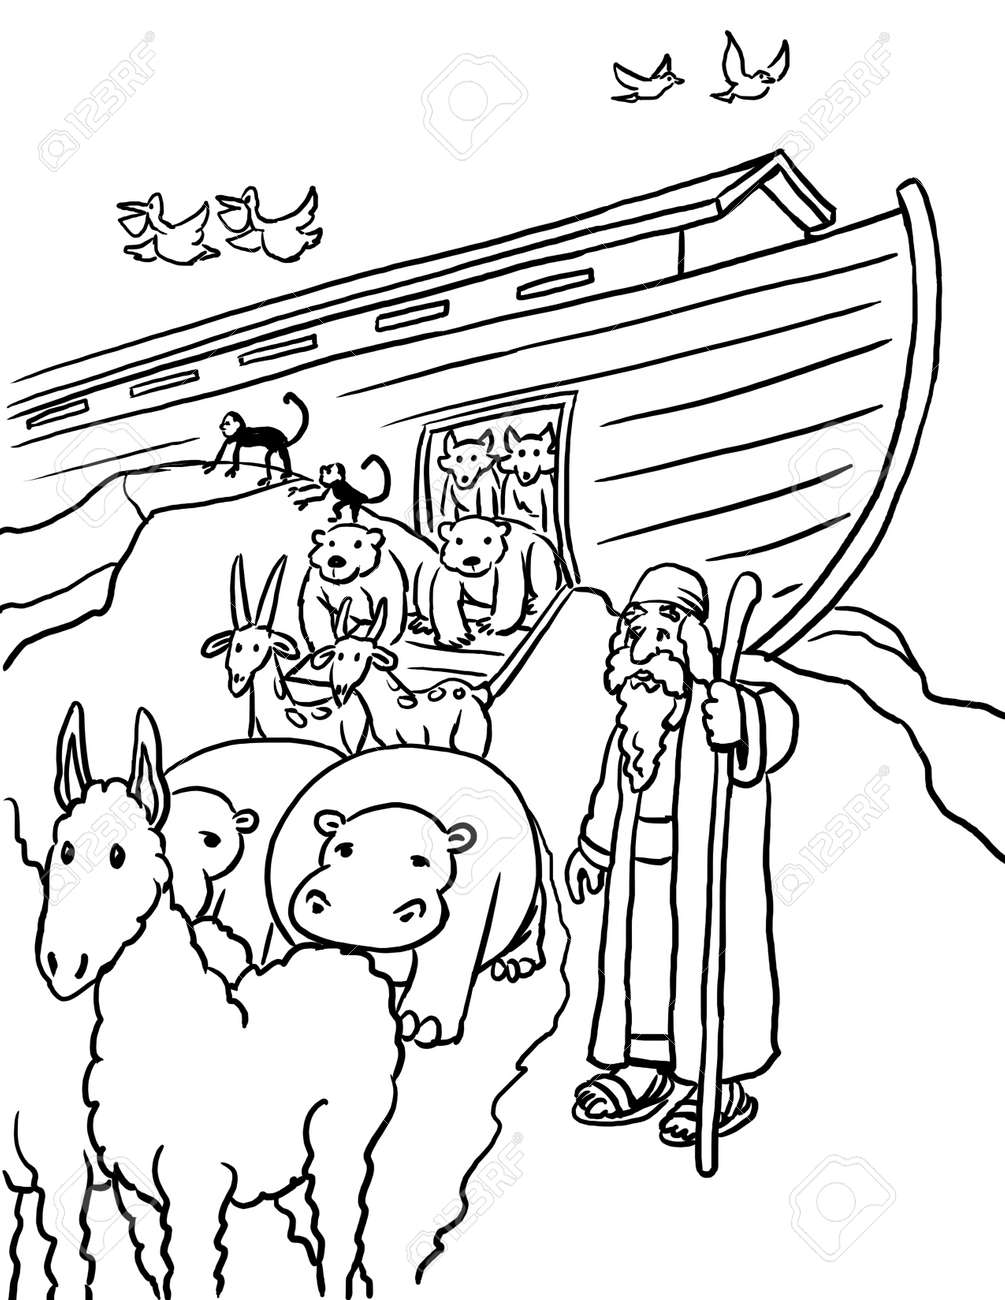 Coloring Page Of Noah And Animals At Ark